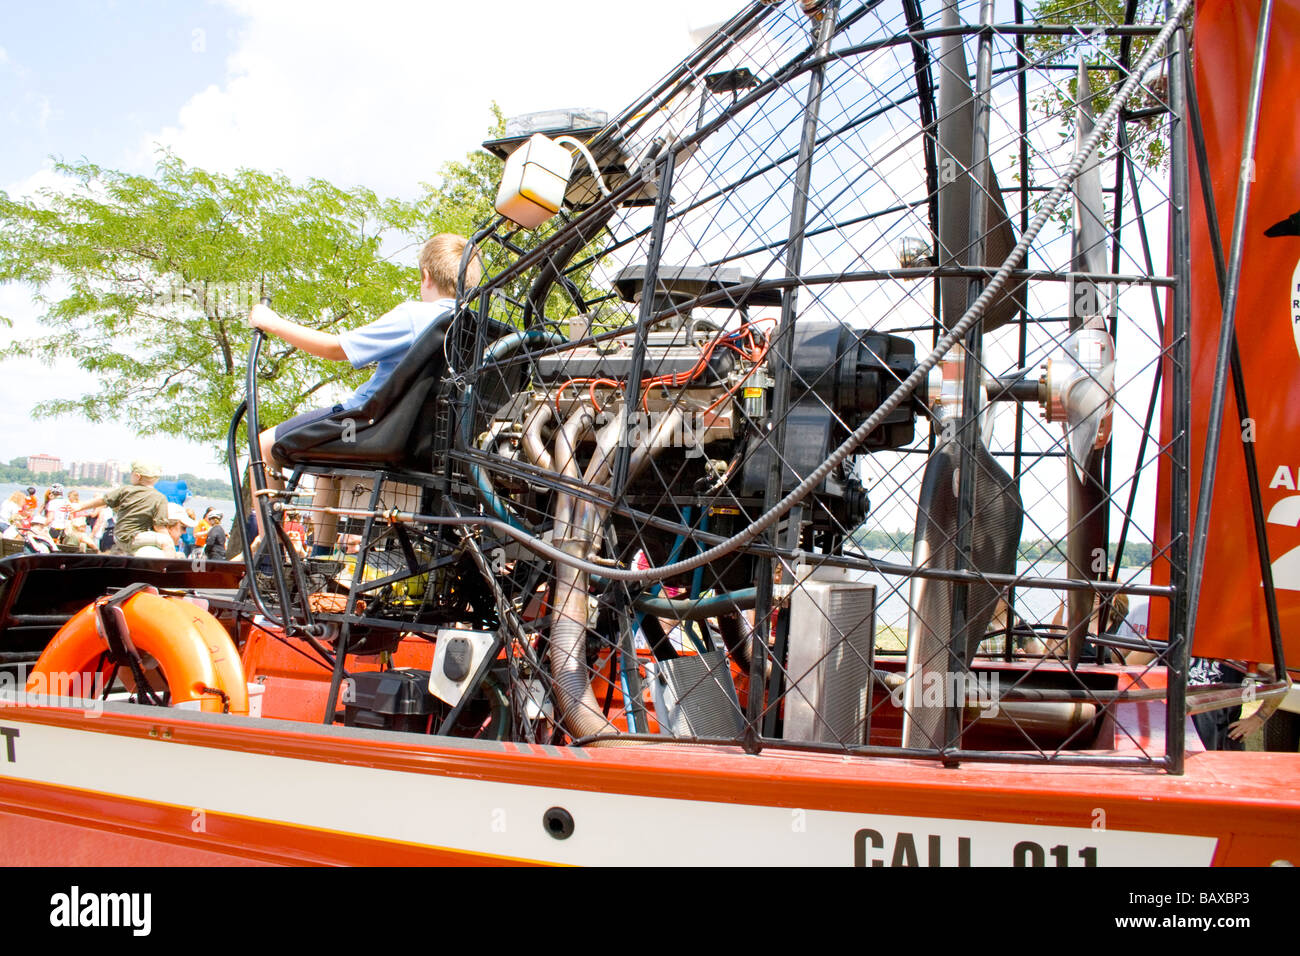 Boy age 12 sitting in drivers seat of fire dept. water rescue airboat. Aquatennial Beach Bash Minneapolis Minnesota - Stock Image